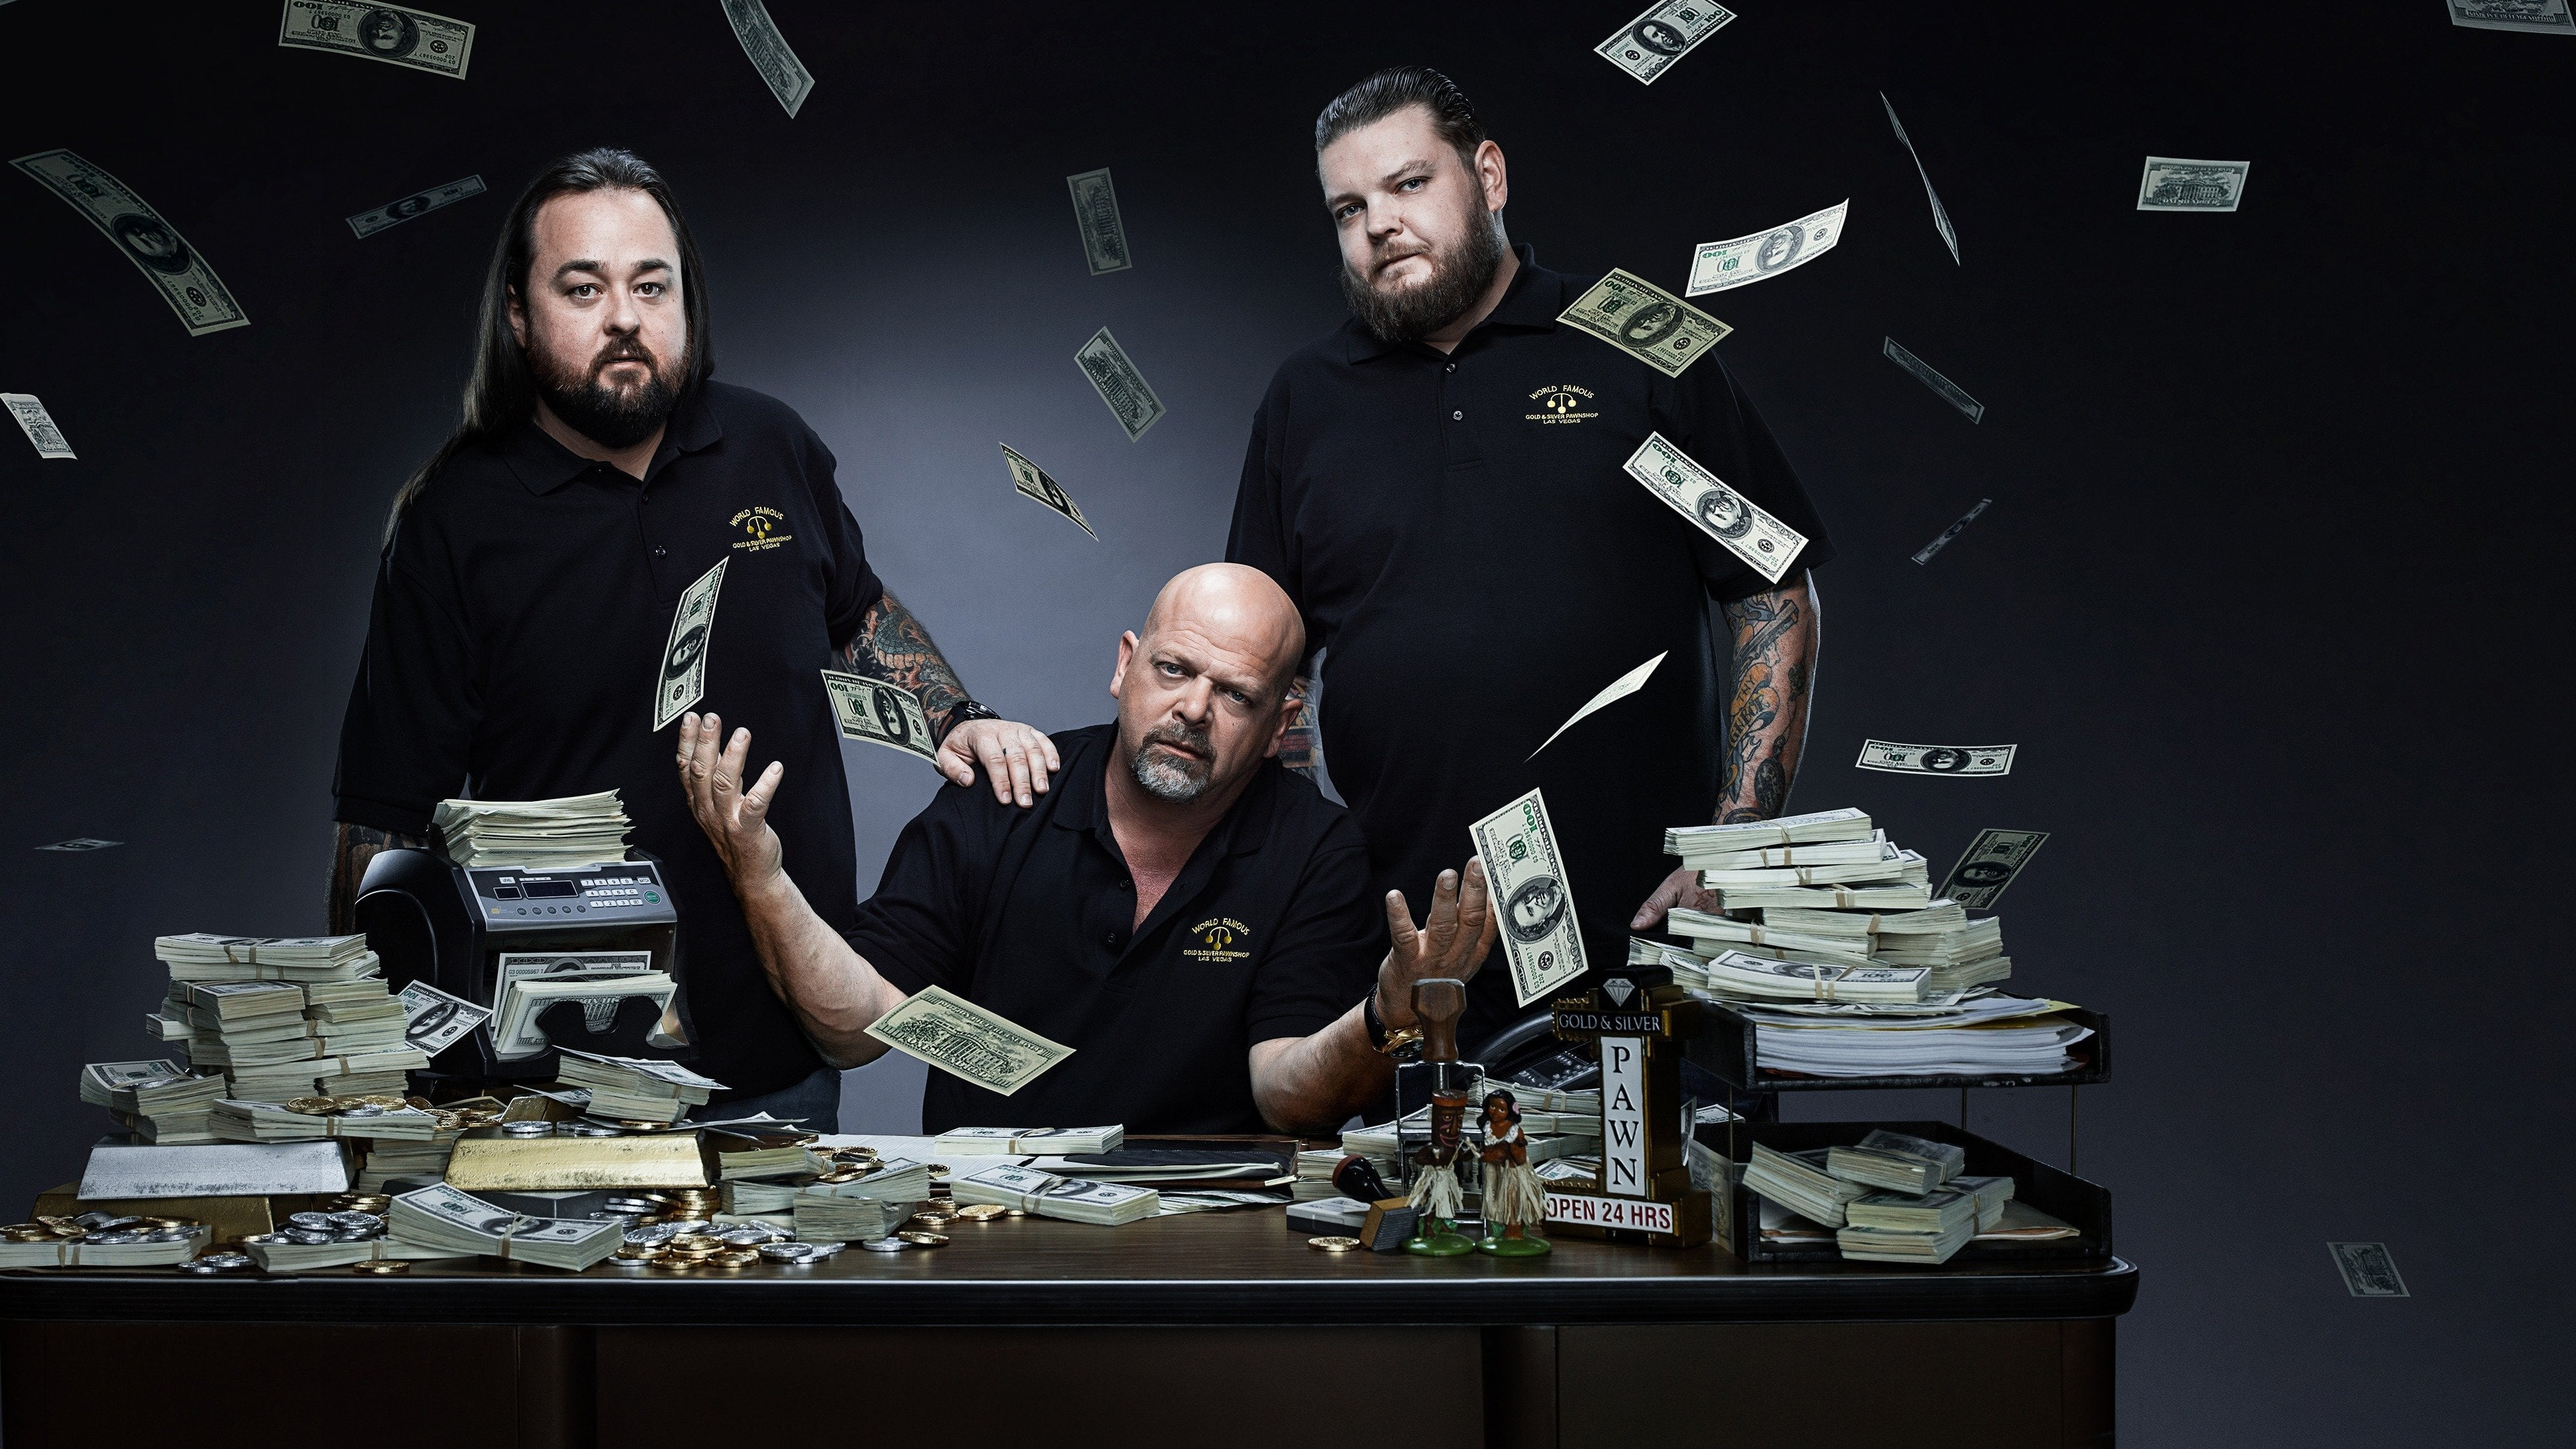 Pawn Stars - Season 5 Episode 26 : Guns Blazing